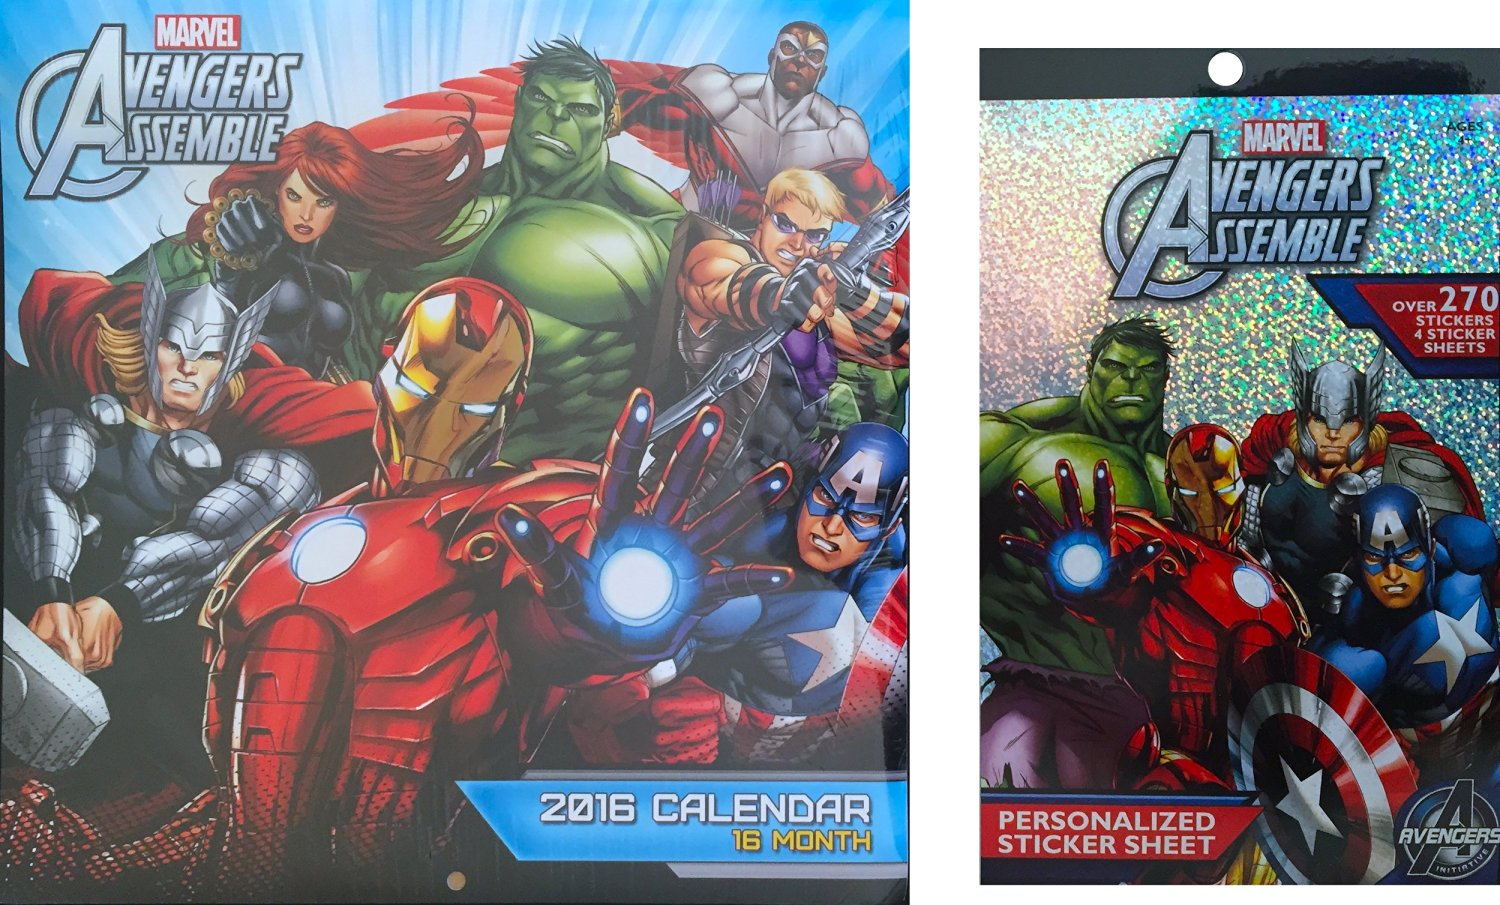 Marvel Avengers Assemble Children's 2016 Calender 16 Month the Perfect Children's Wall Decor with Avengers Assemble Sticker Book 270 Calendar